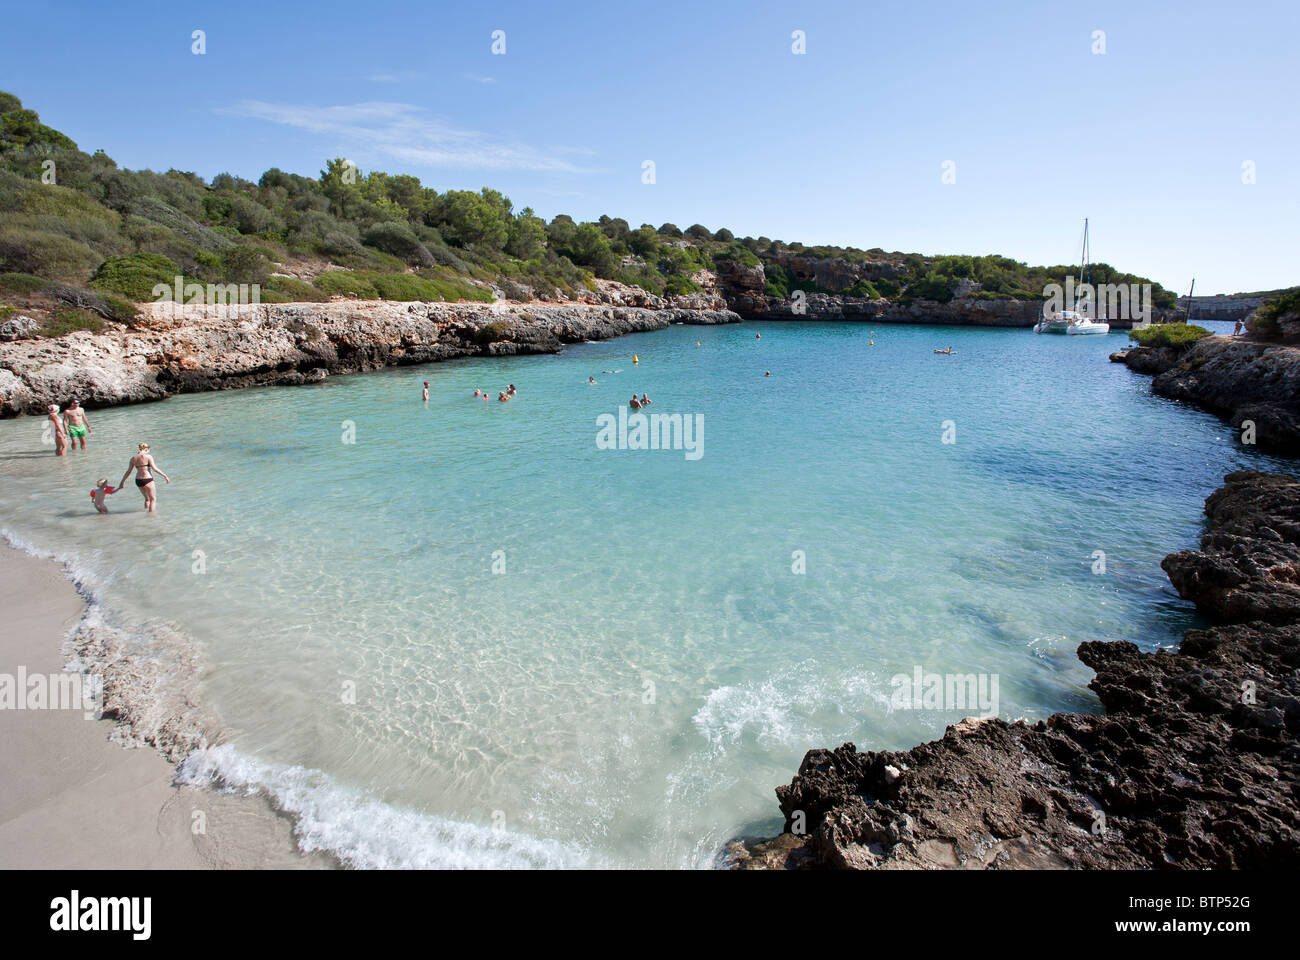 Cala Sa Nau beach. Mallorca Island. Spain Stock Photo